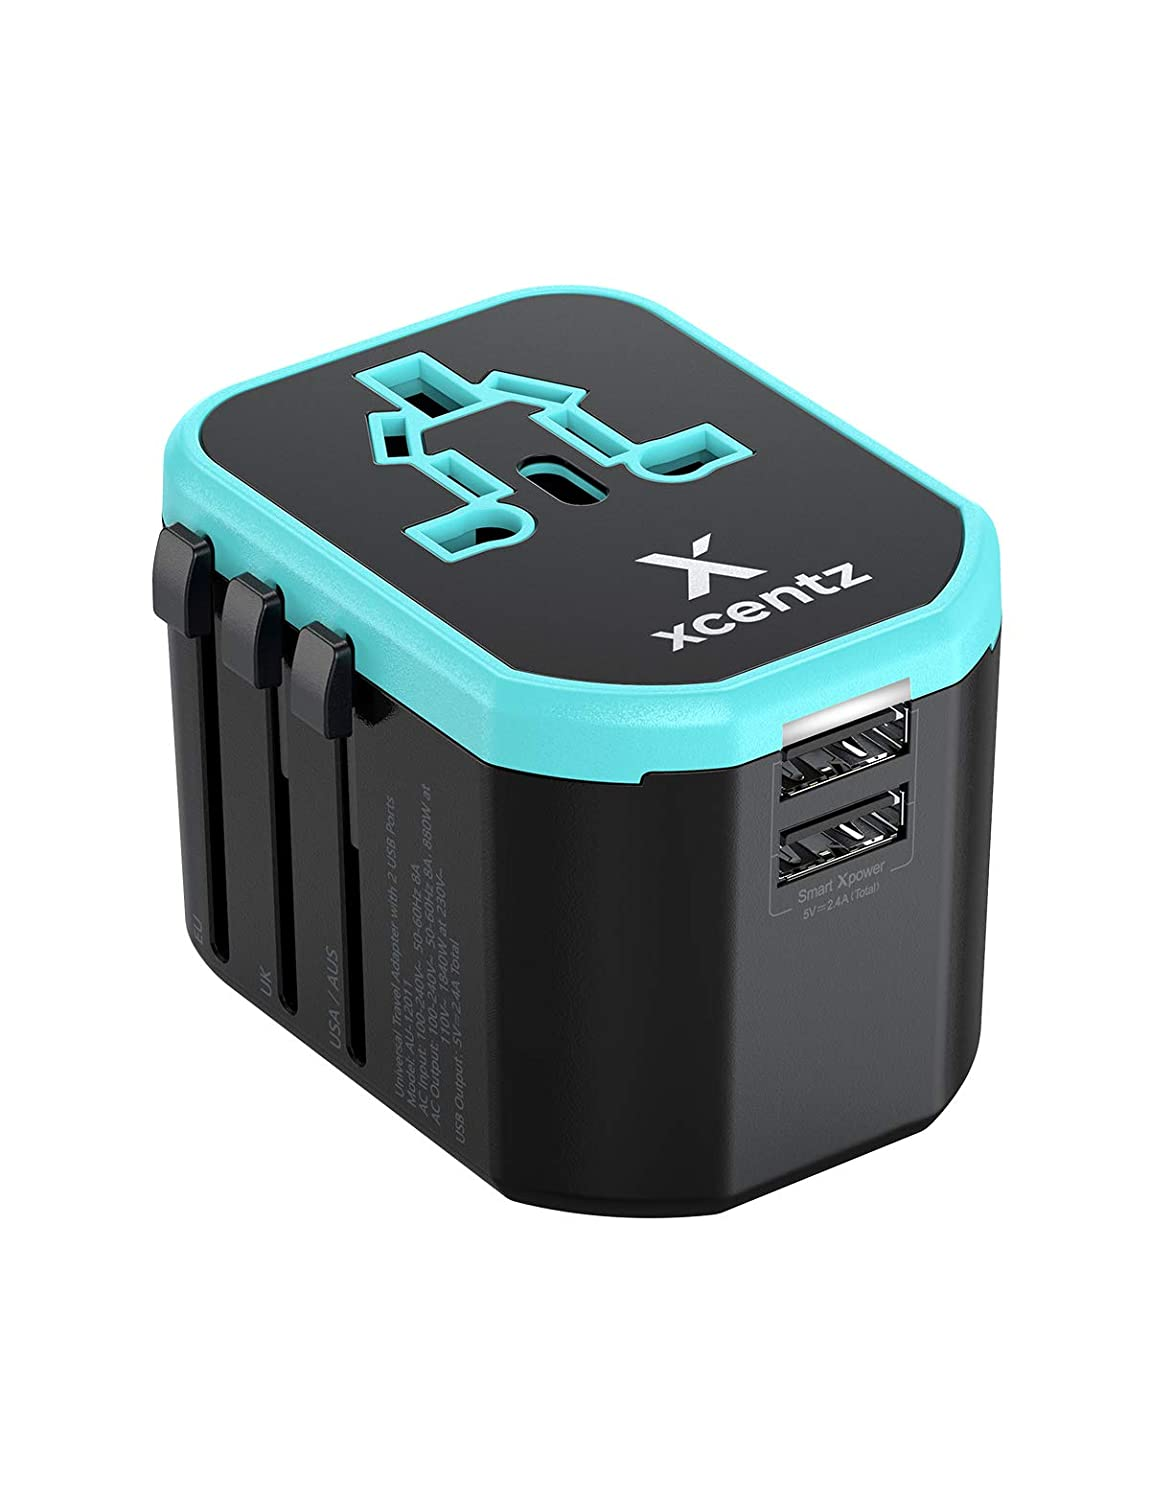 Xcentz Universal Travel Power Adapter International All in One Worldwide Travel Adapter Wall Charger AC Power Plug Adapter with Dual USB Ports for US EU UK AUS European Cell Phone Laptop